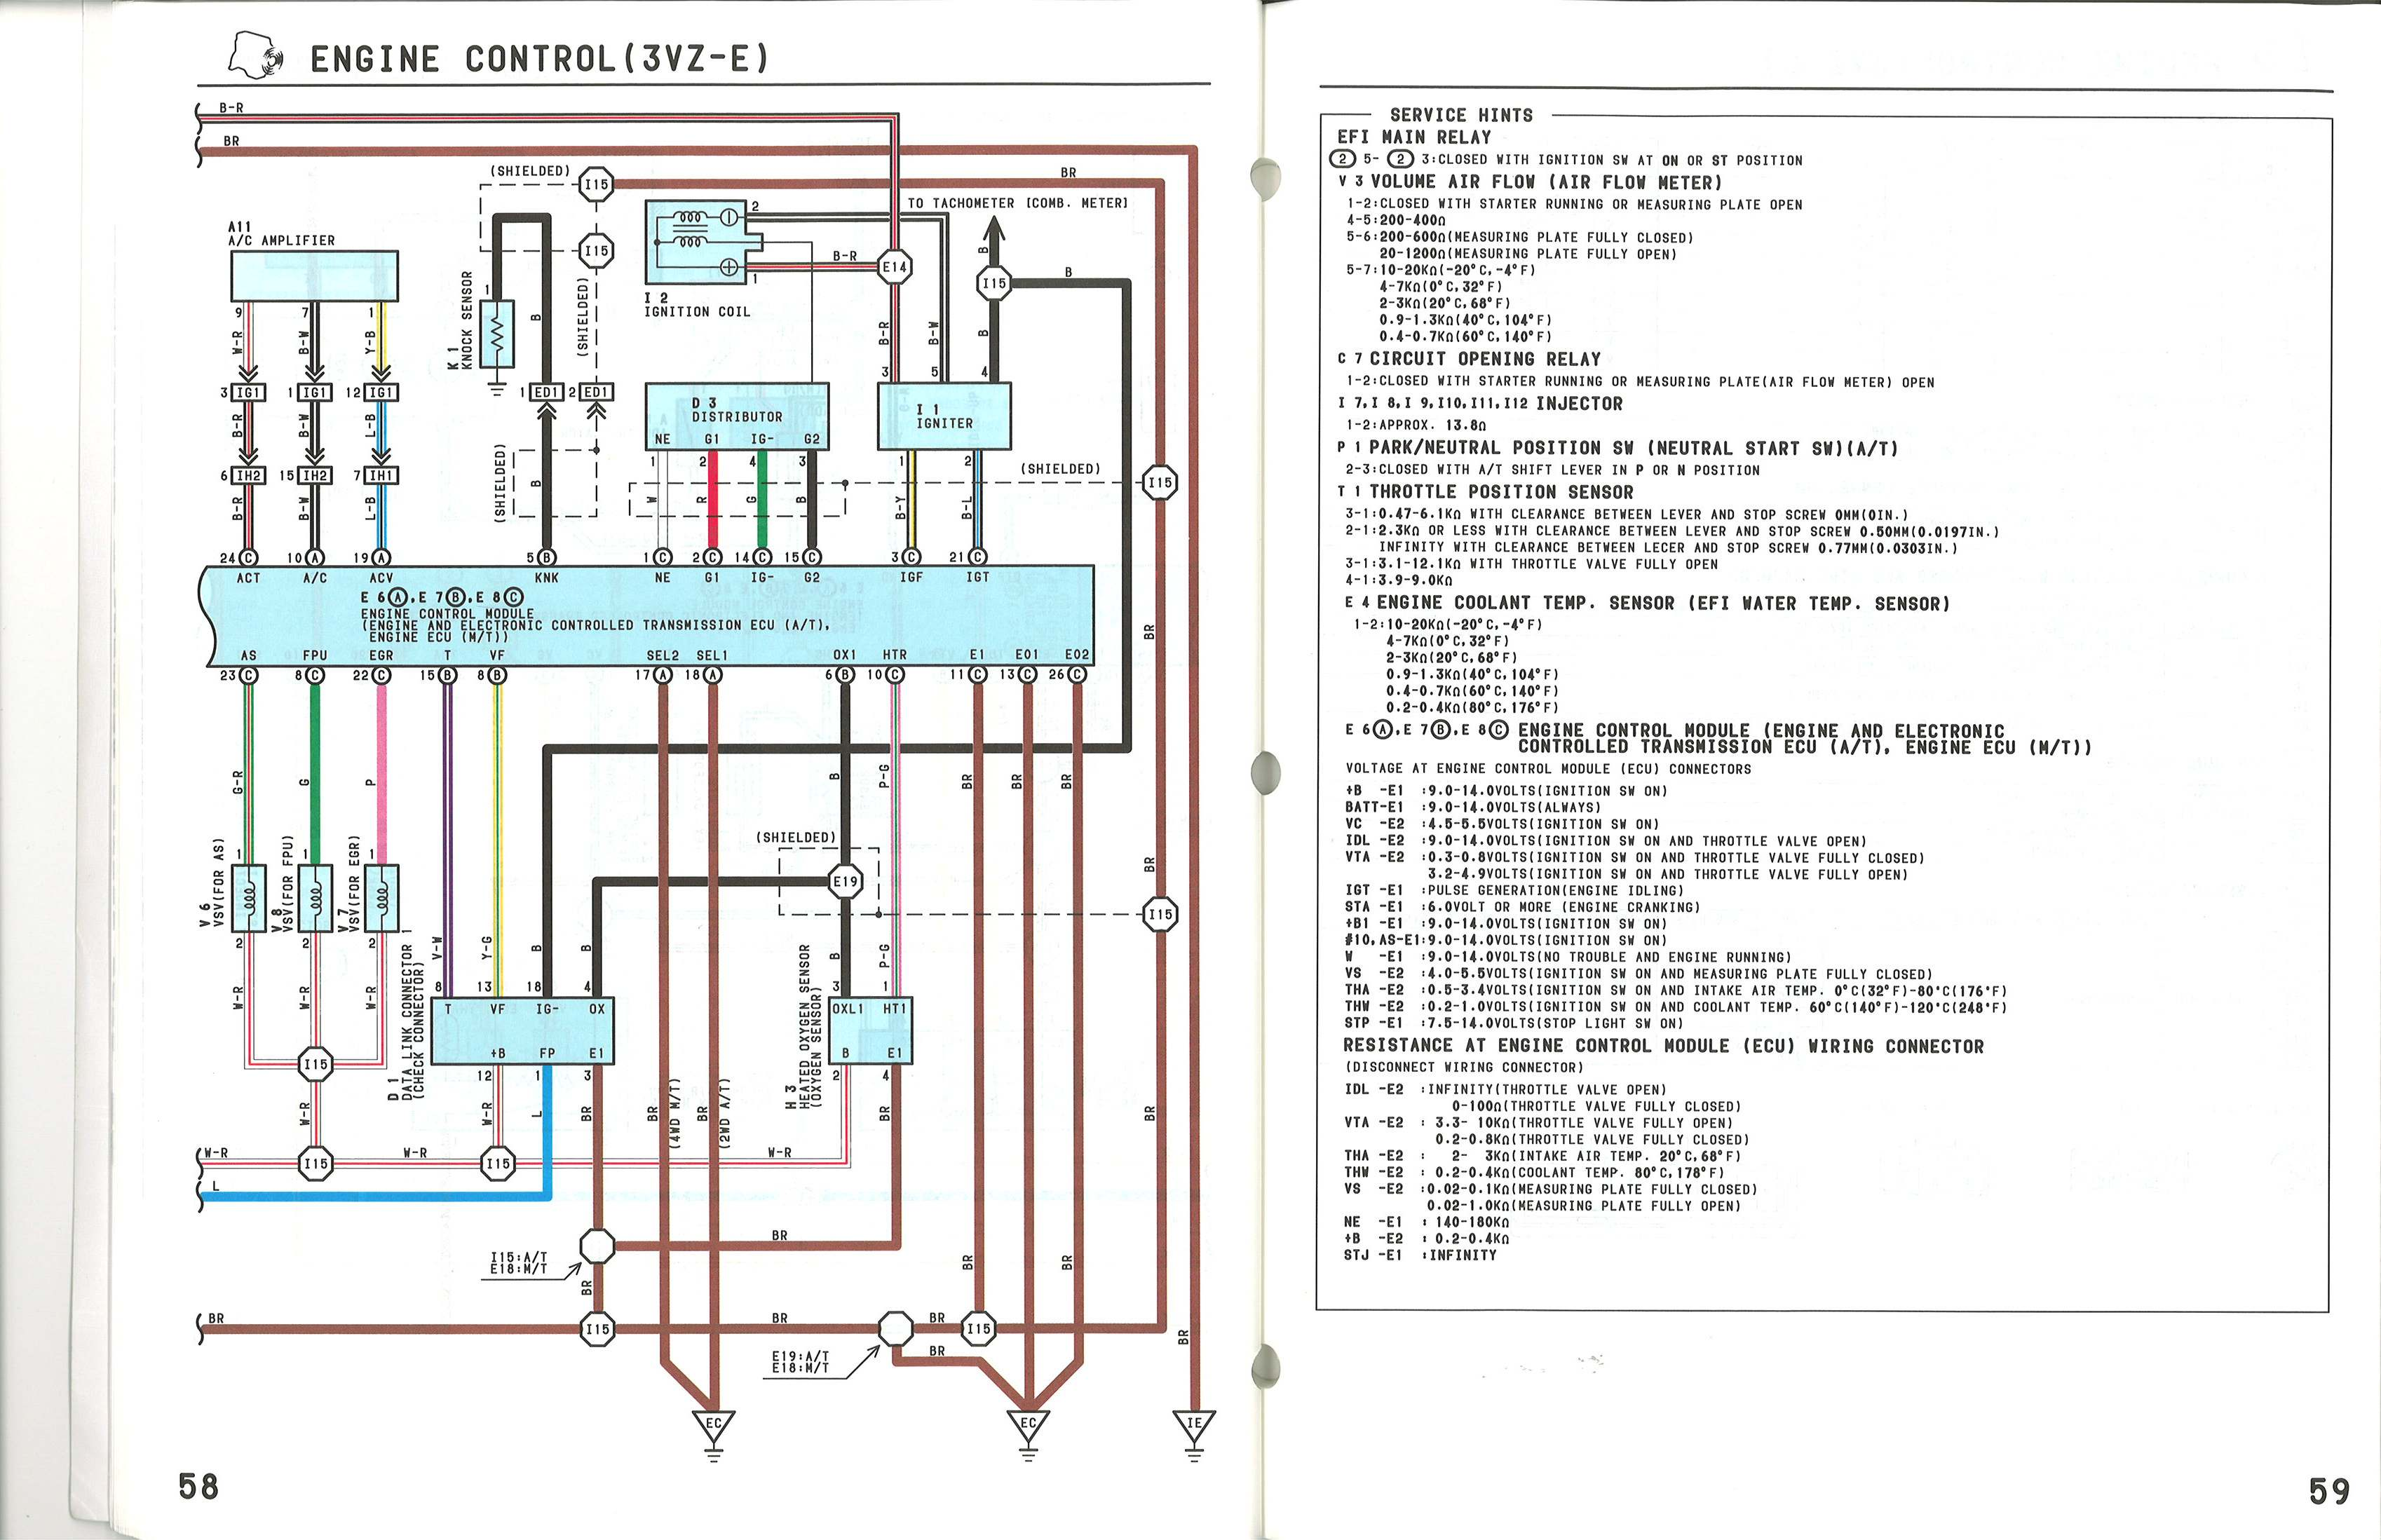 Engine_Control_3vze_3 ecu diagram for 1988 3vz e yotatech forums 92 Toyota Pickup 2WD at crackthecode.co